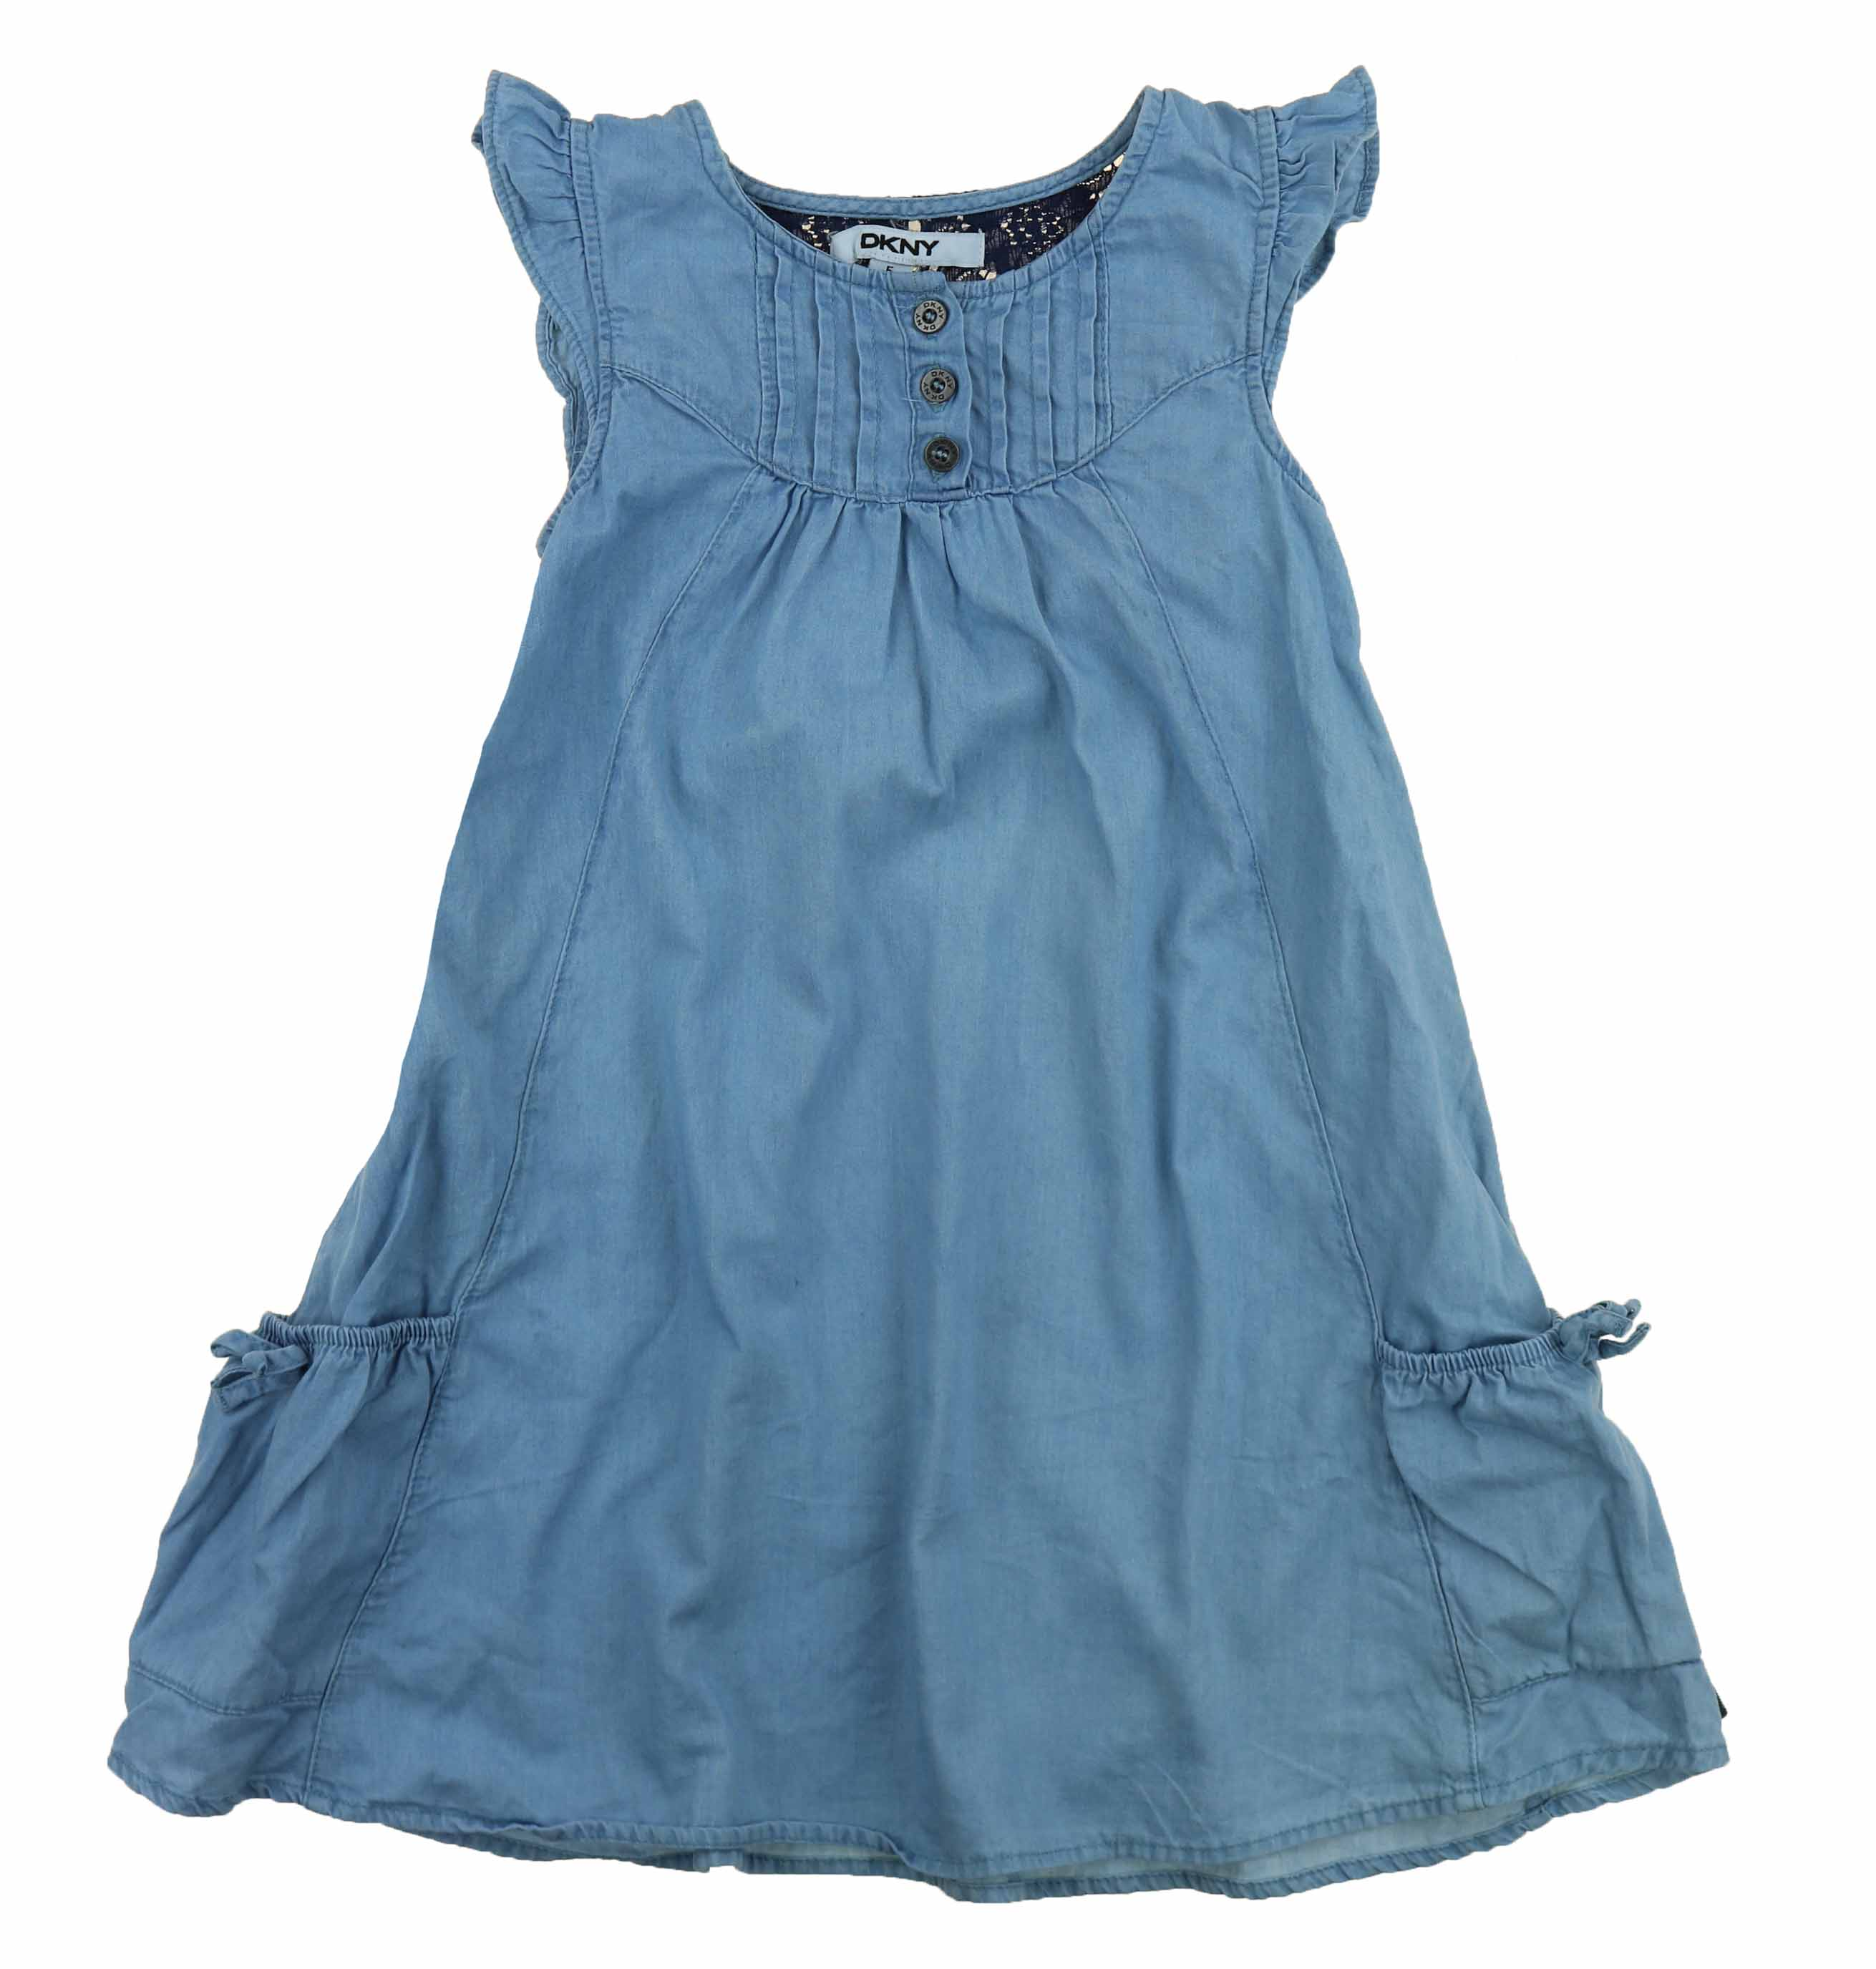 05d0e5ed26f DKNY-Girls-Denim-Dress-or-Romper thumbnail 3